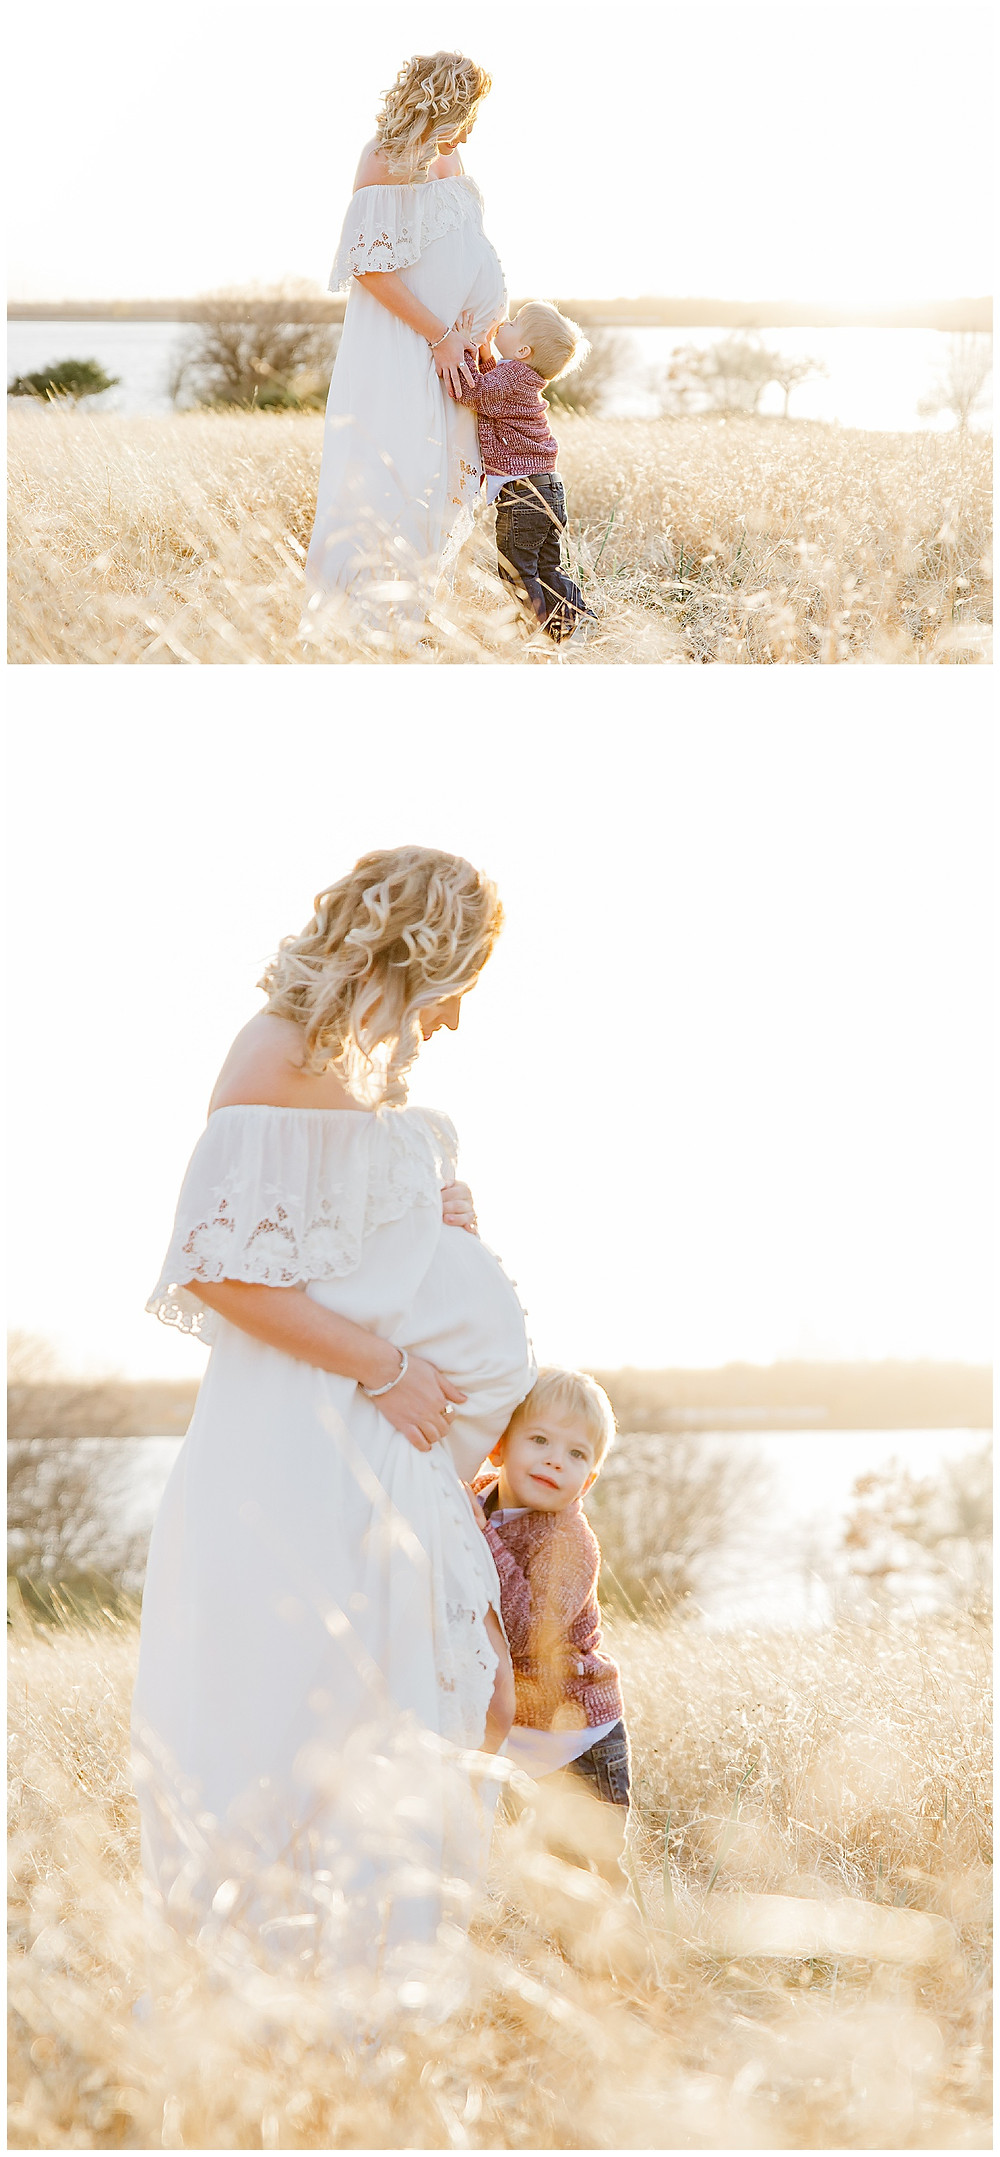 maternity photographer in Dallas, TX